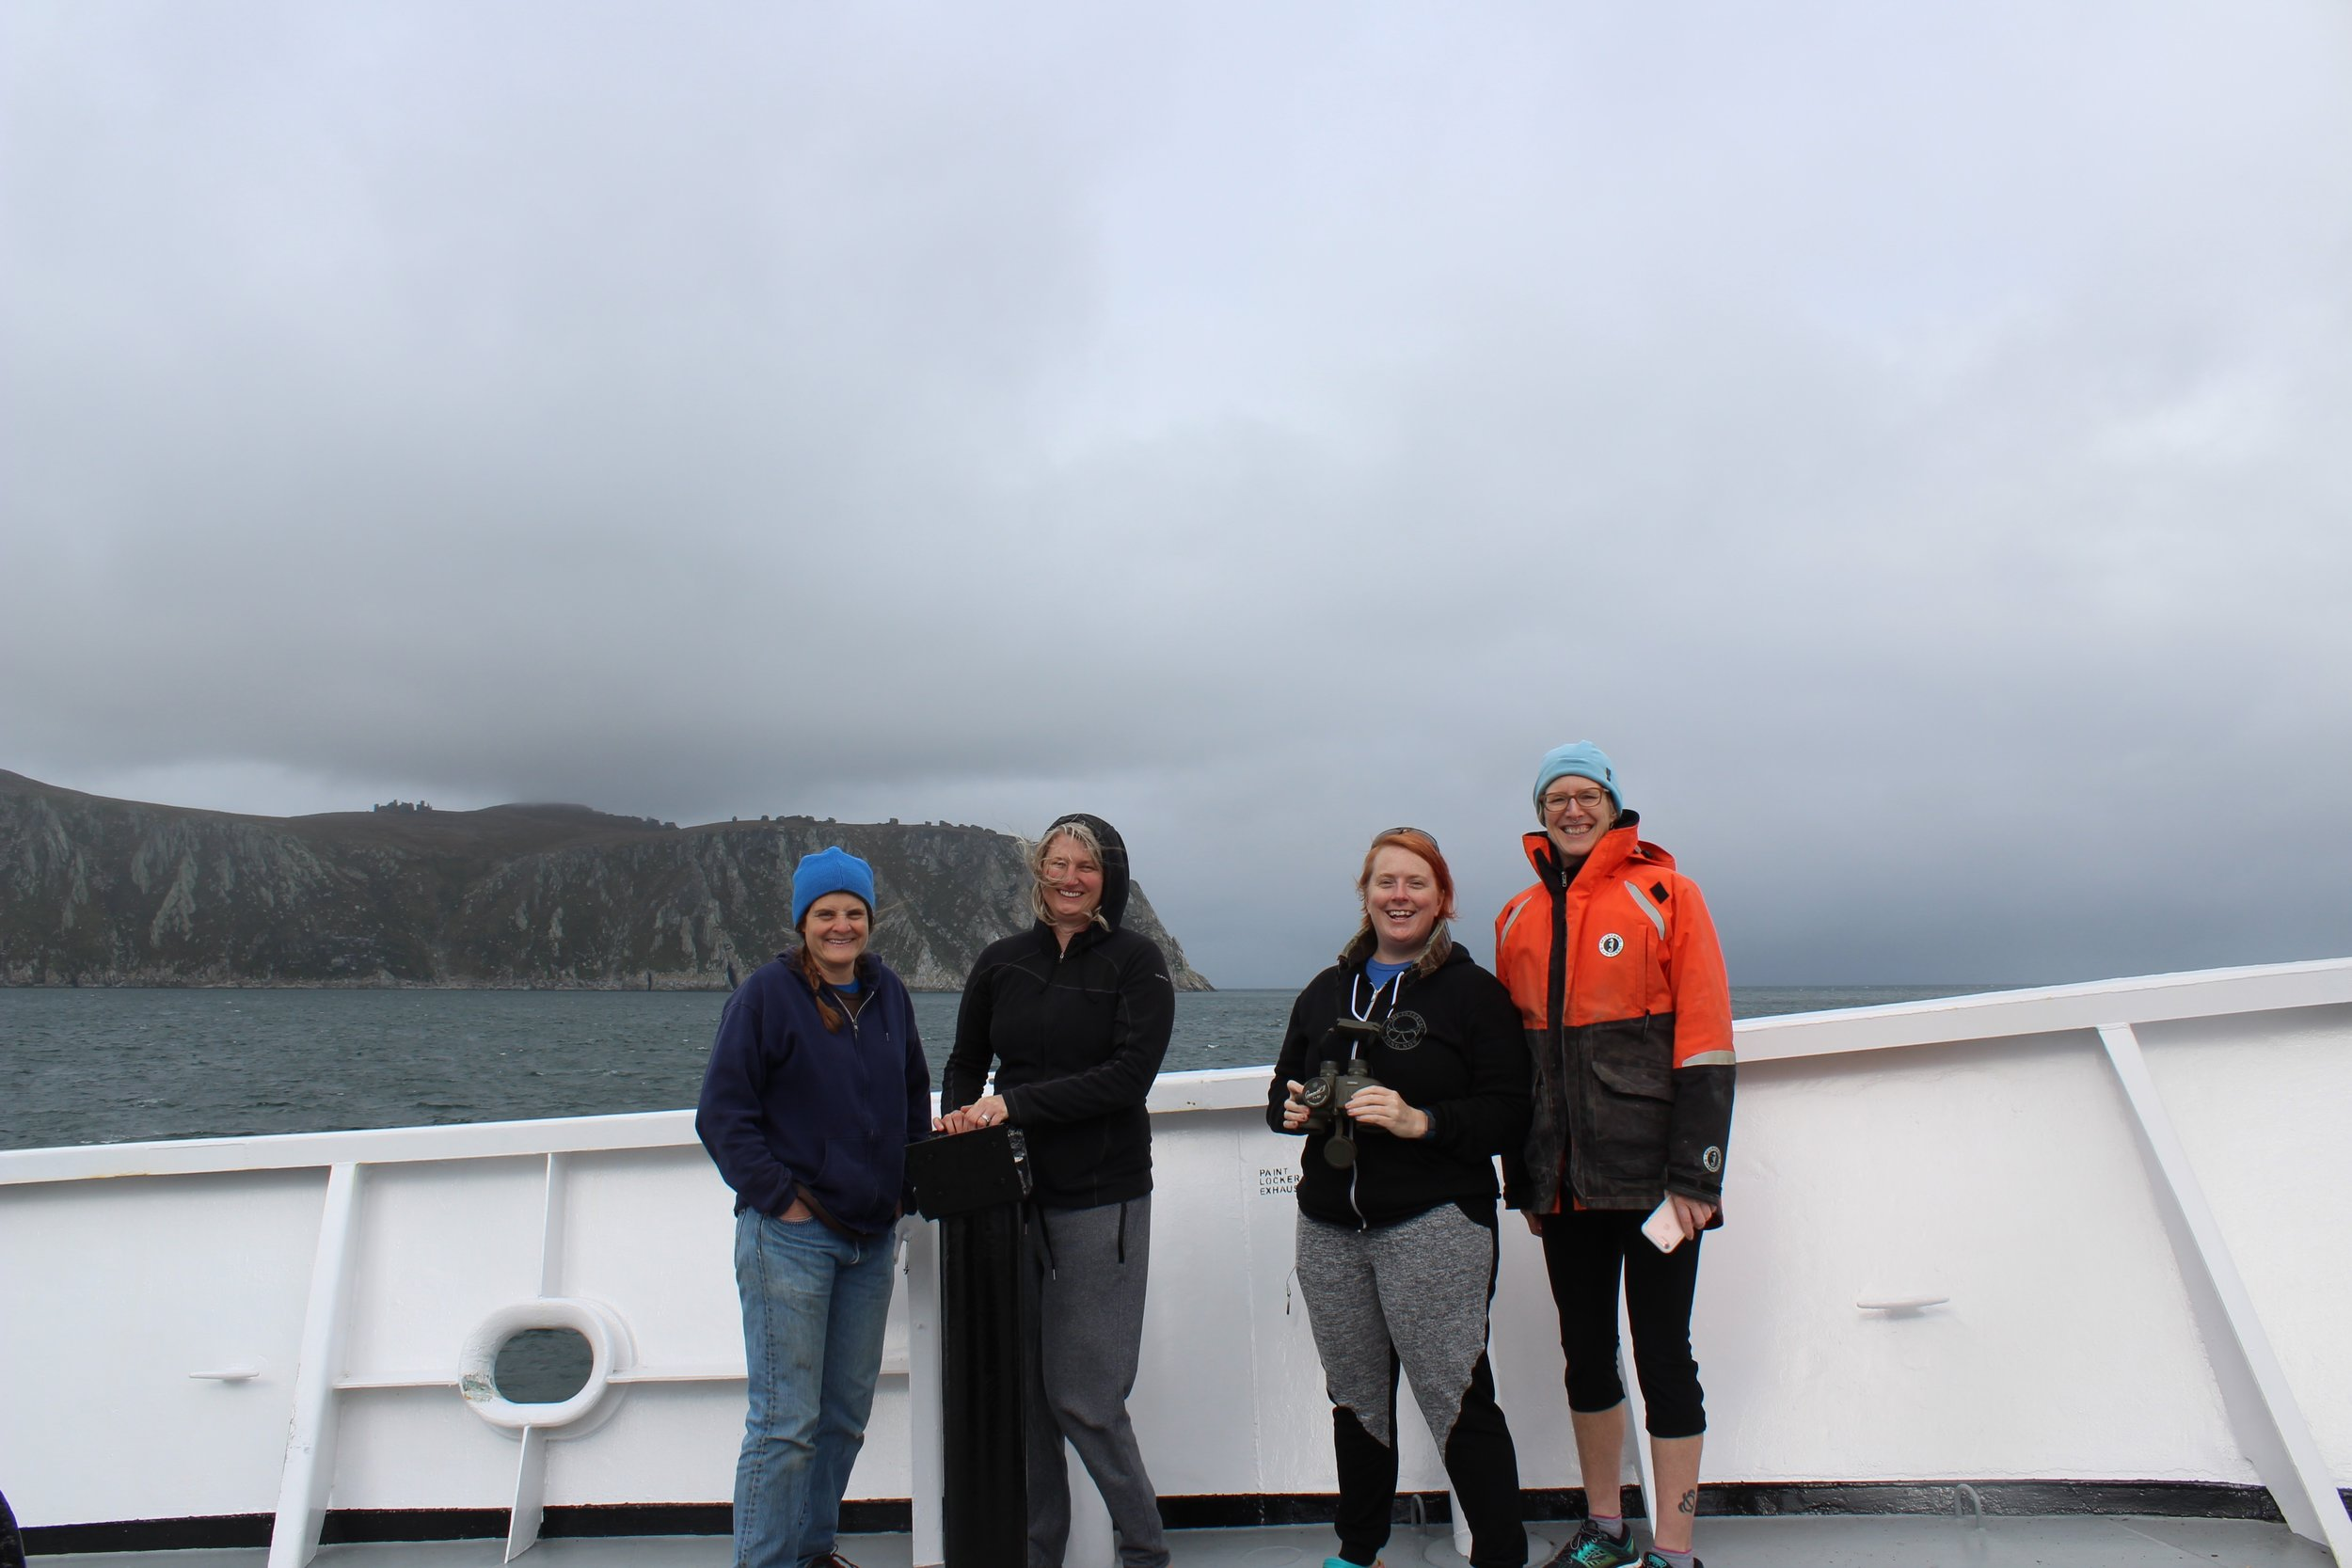 Left to Right:Catherine Berchok, Cathleen Vestfals, Nissa Ferm, and Libby Logerwell, out on bow in front of King Island in the northern Bering Sea. Photo credit: Harmony Wayner